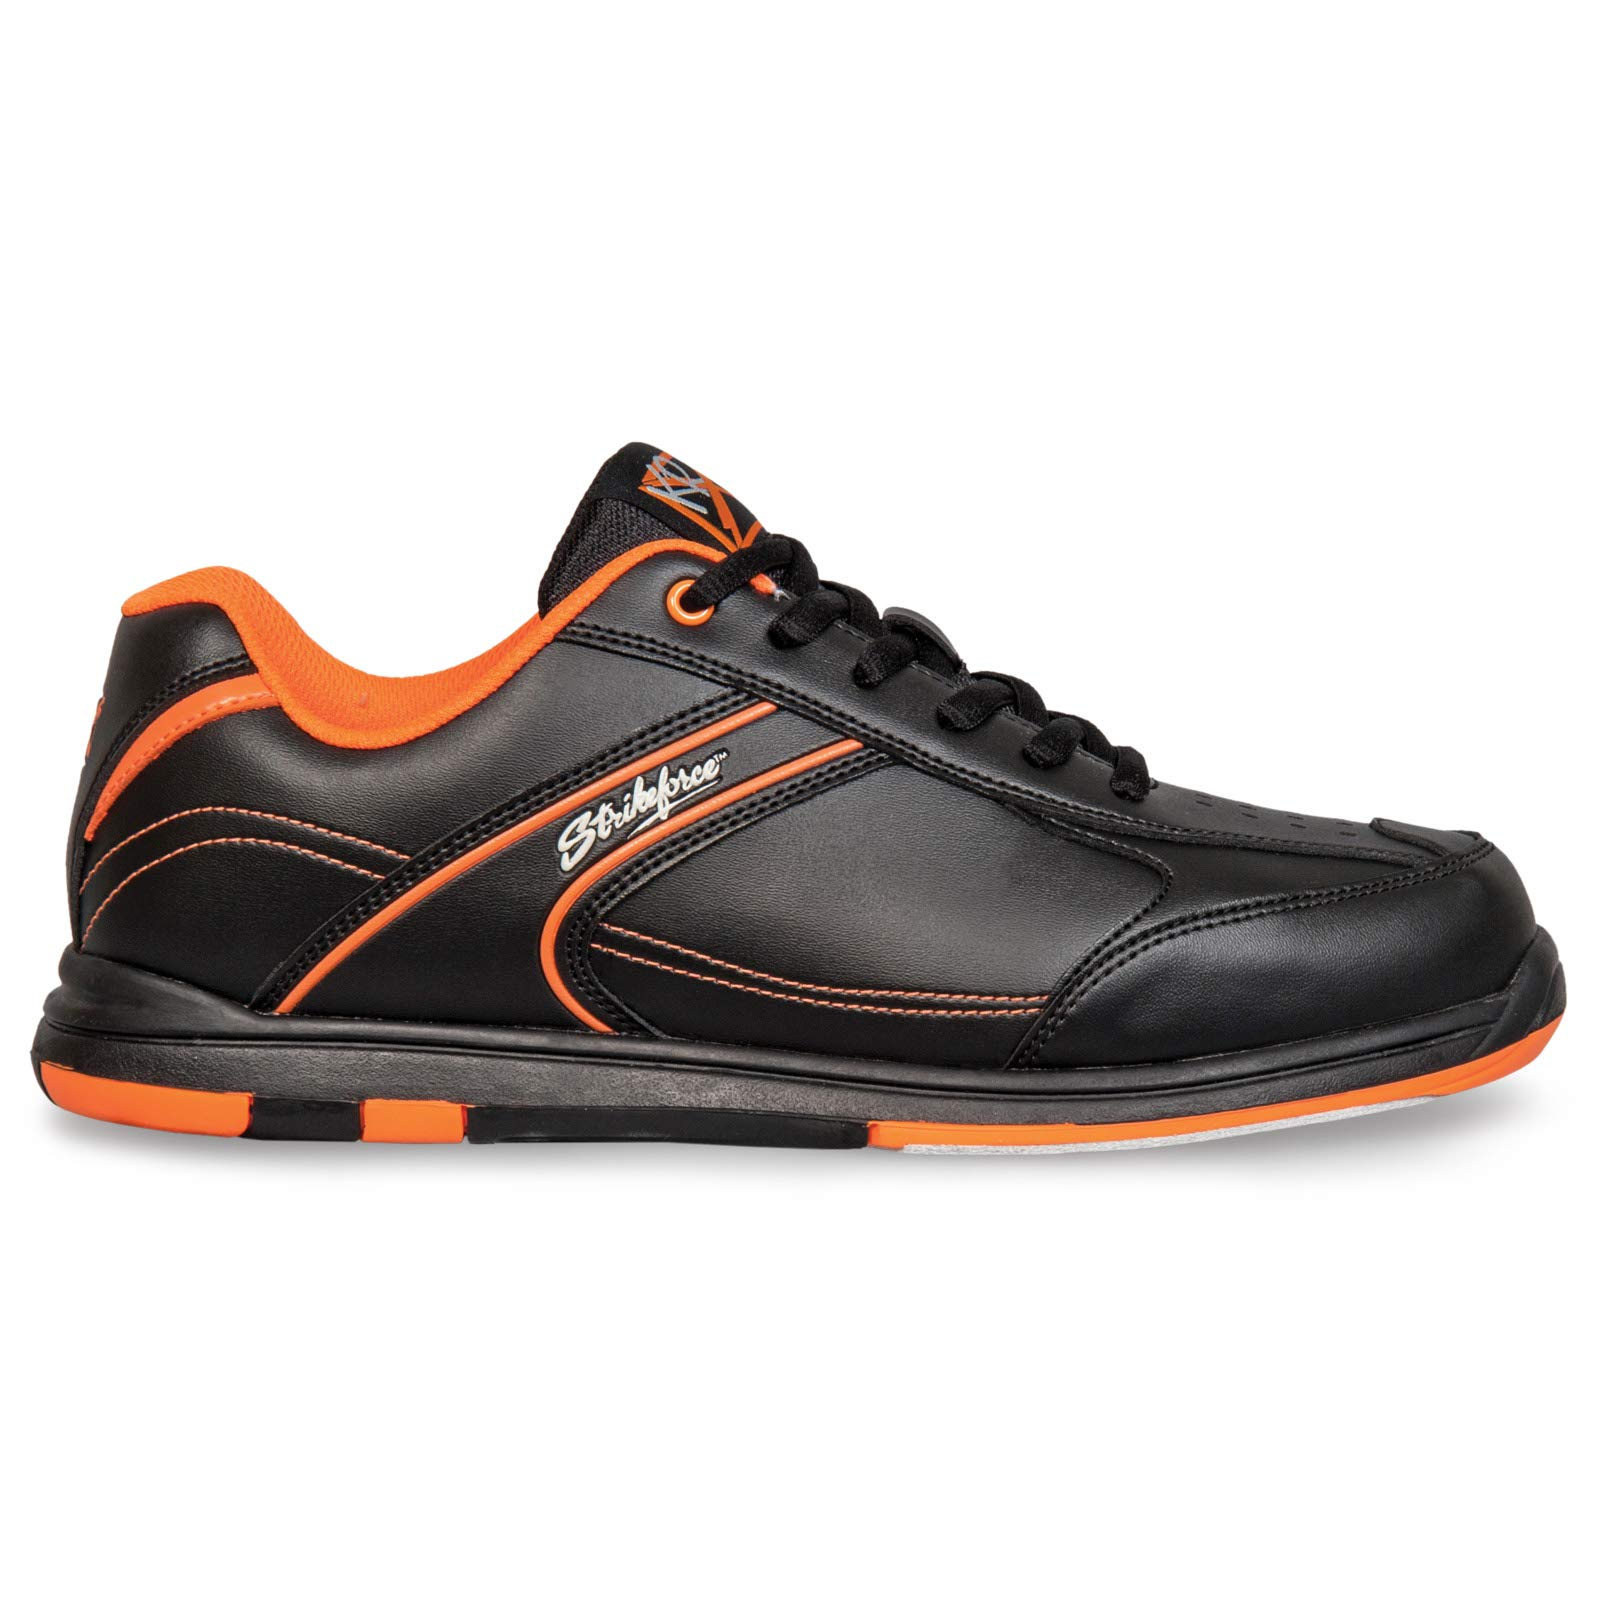 Strikeforce Flyer Black/Oragne Bowling Shoes Men's Size 10 by KR Strikeforce (Image #2)